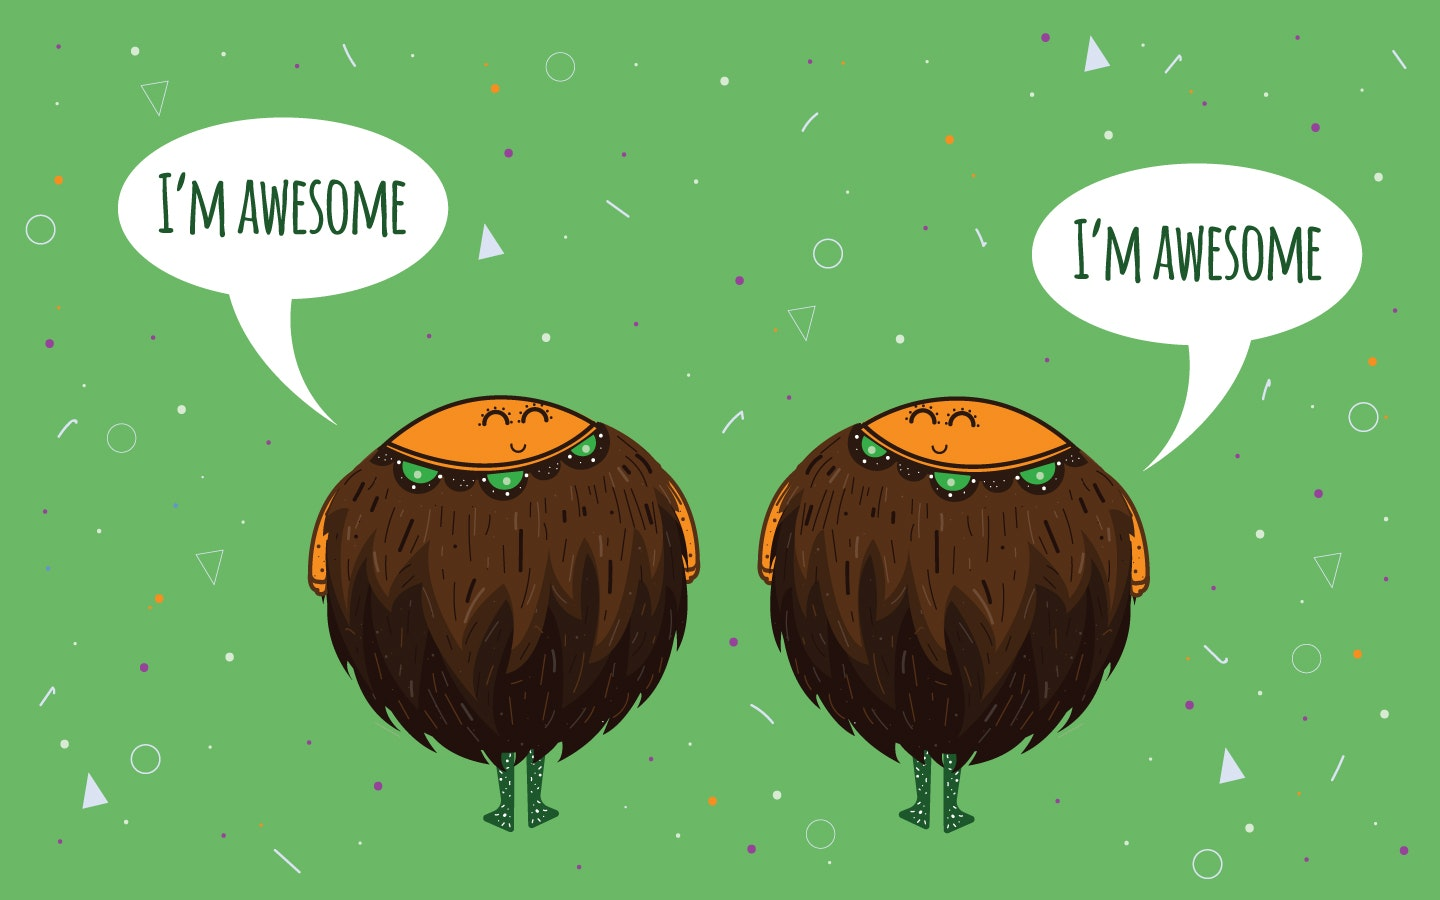 Remember that you are awesome